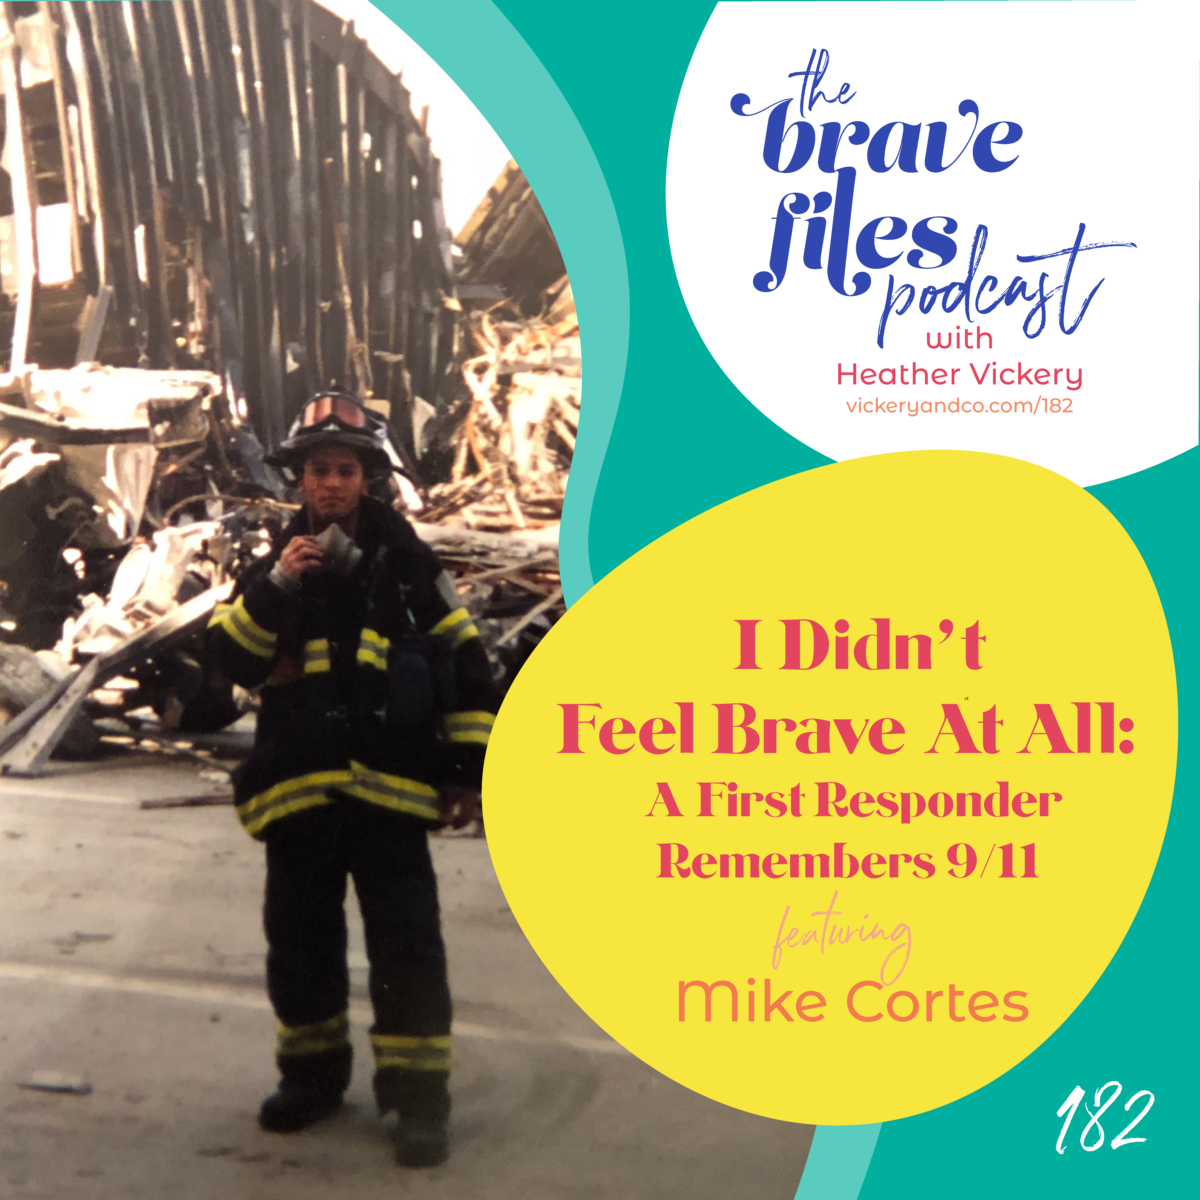 A first responder remembers 9/11. The Brave Files Podcast.